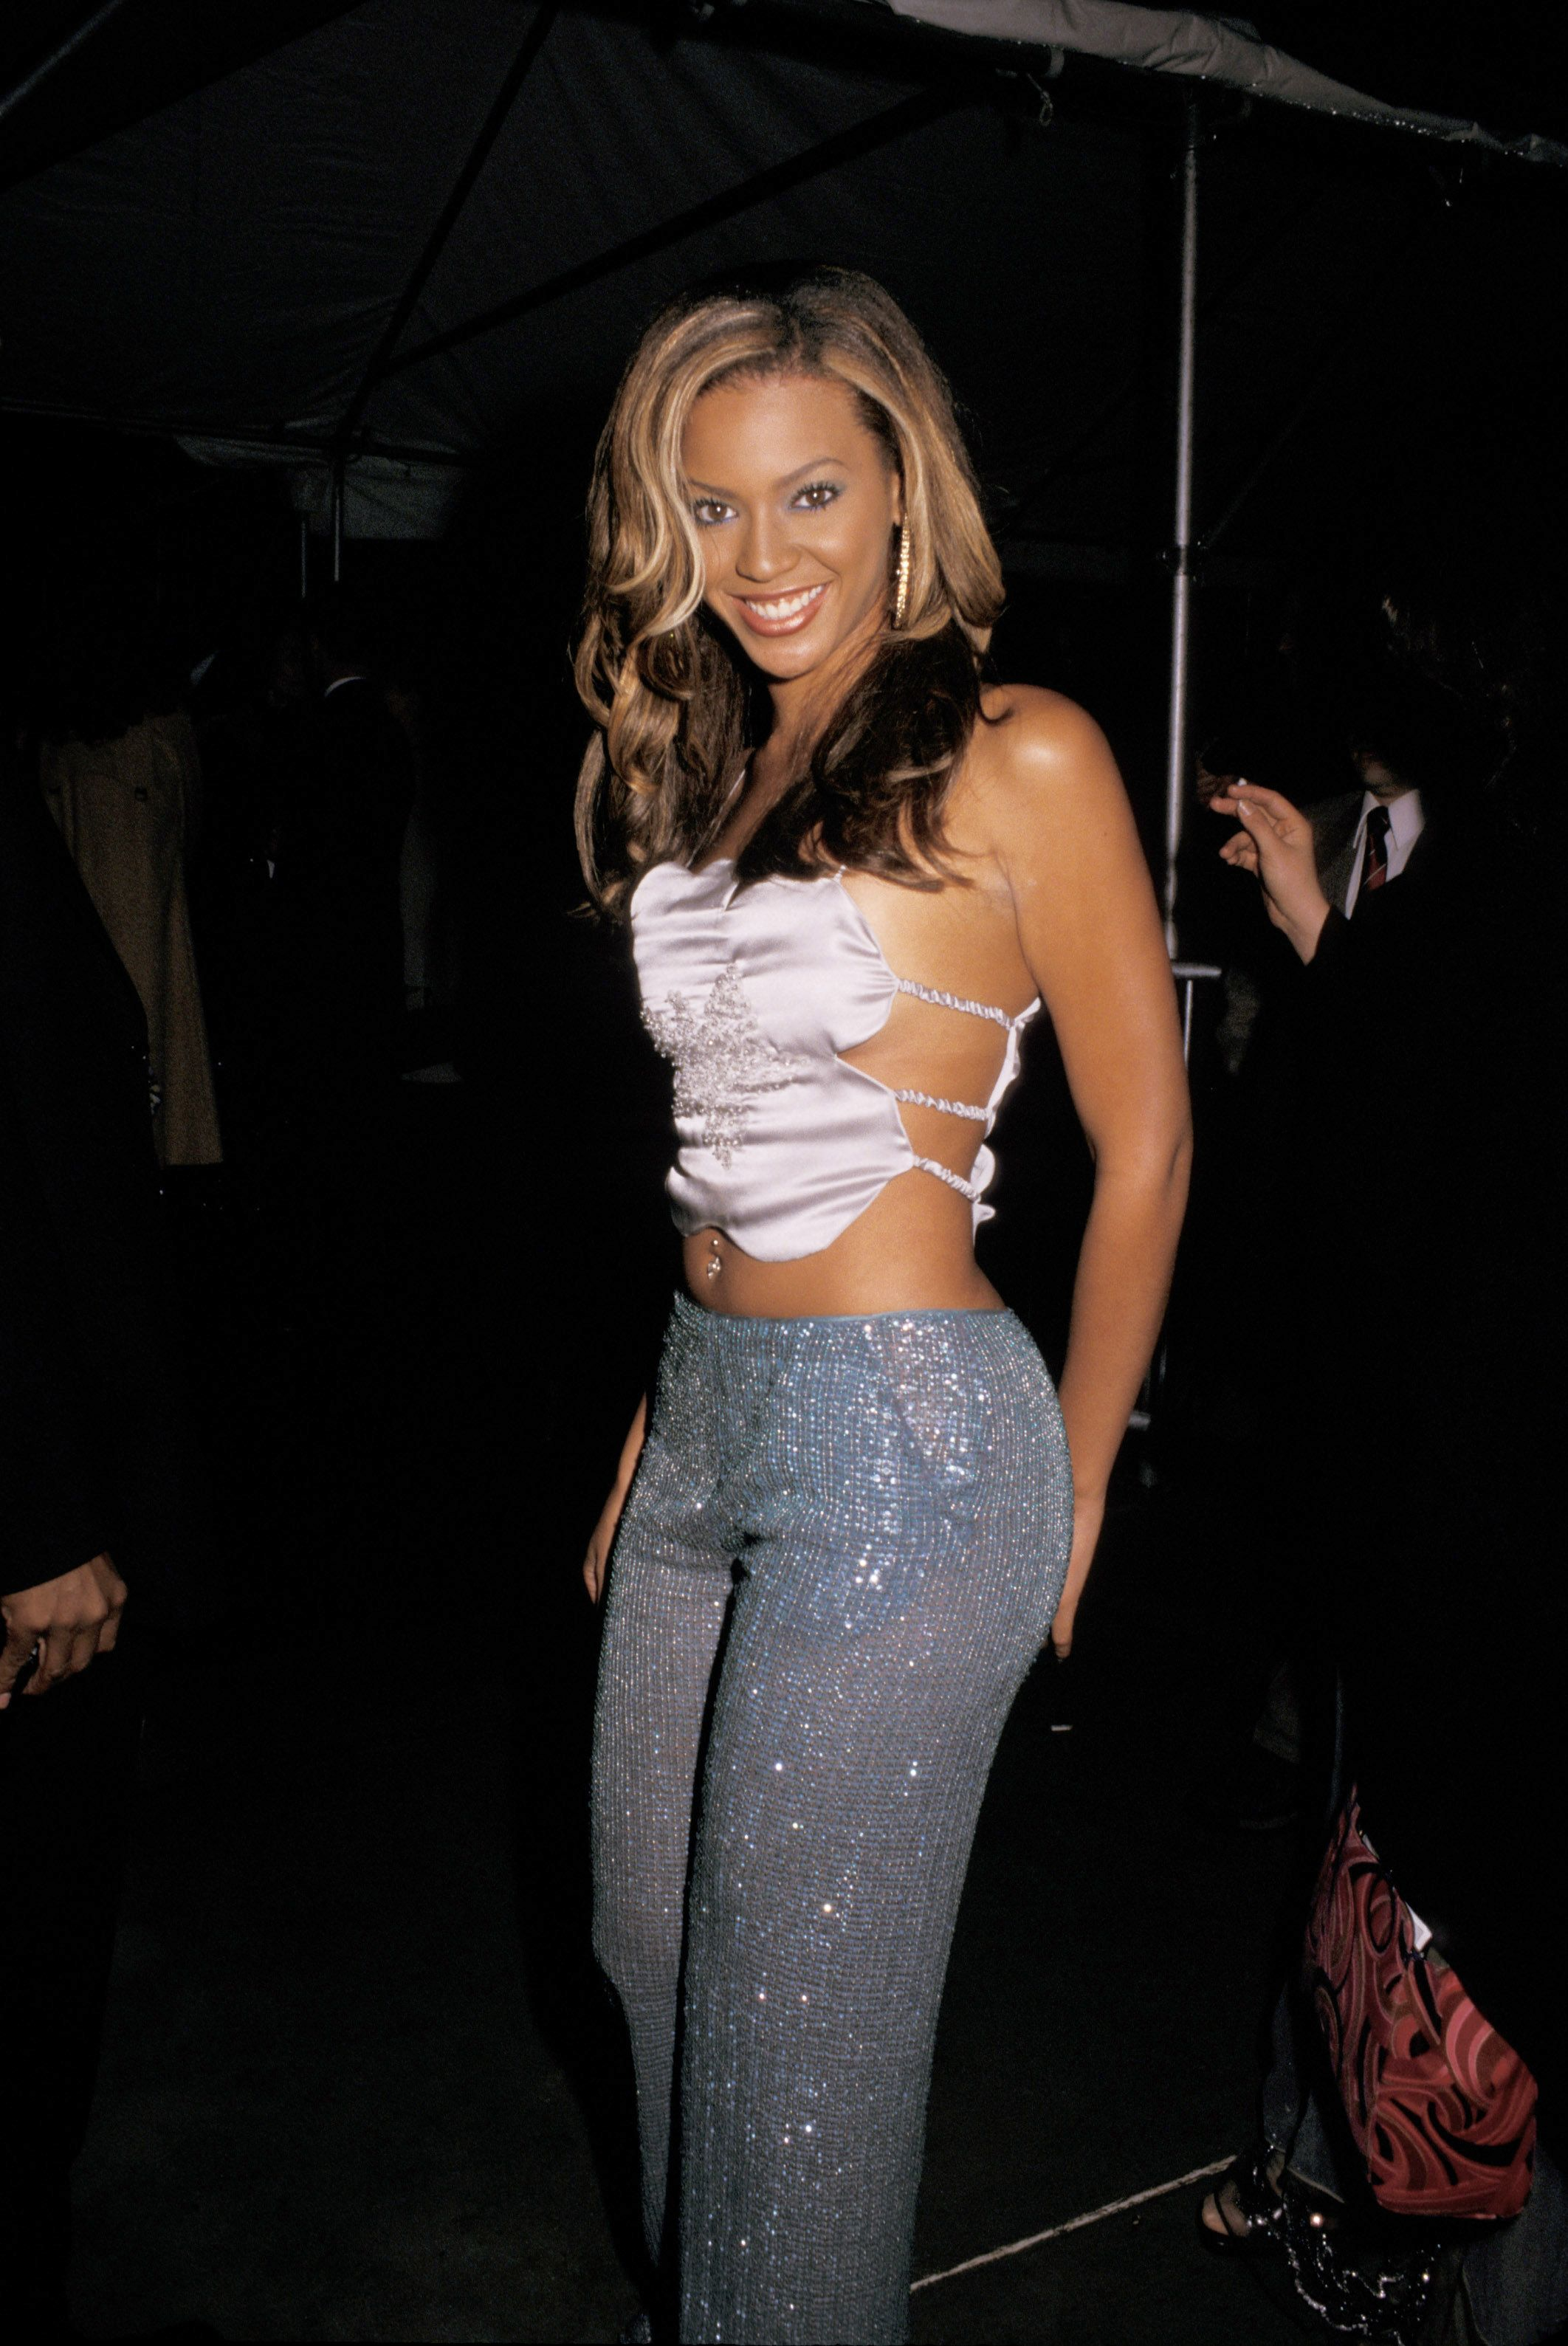 35 Old School Beyonce Outfits You Probably Wanted To Copy In The 00s Beyonce Outfits 2000s Fashion Outfits 2000s Fashion